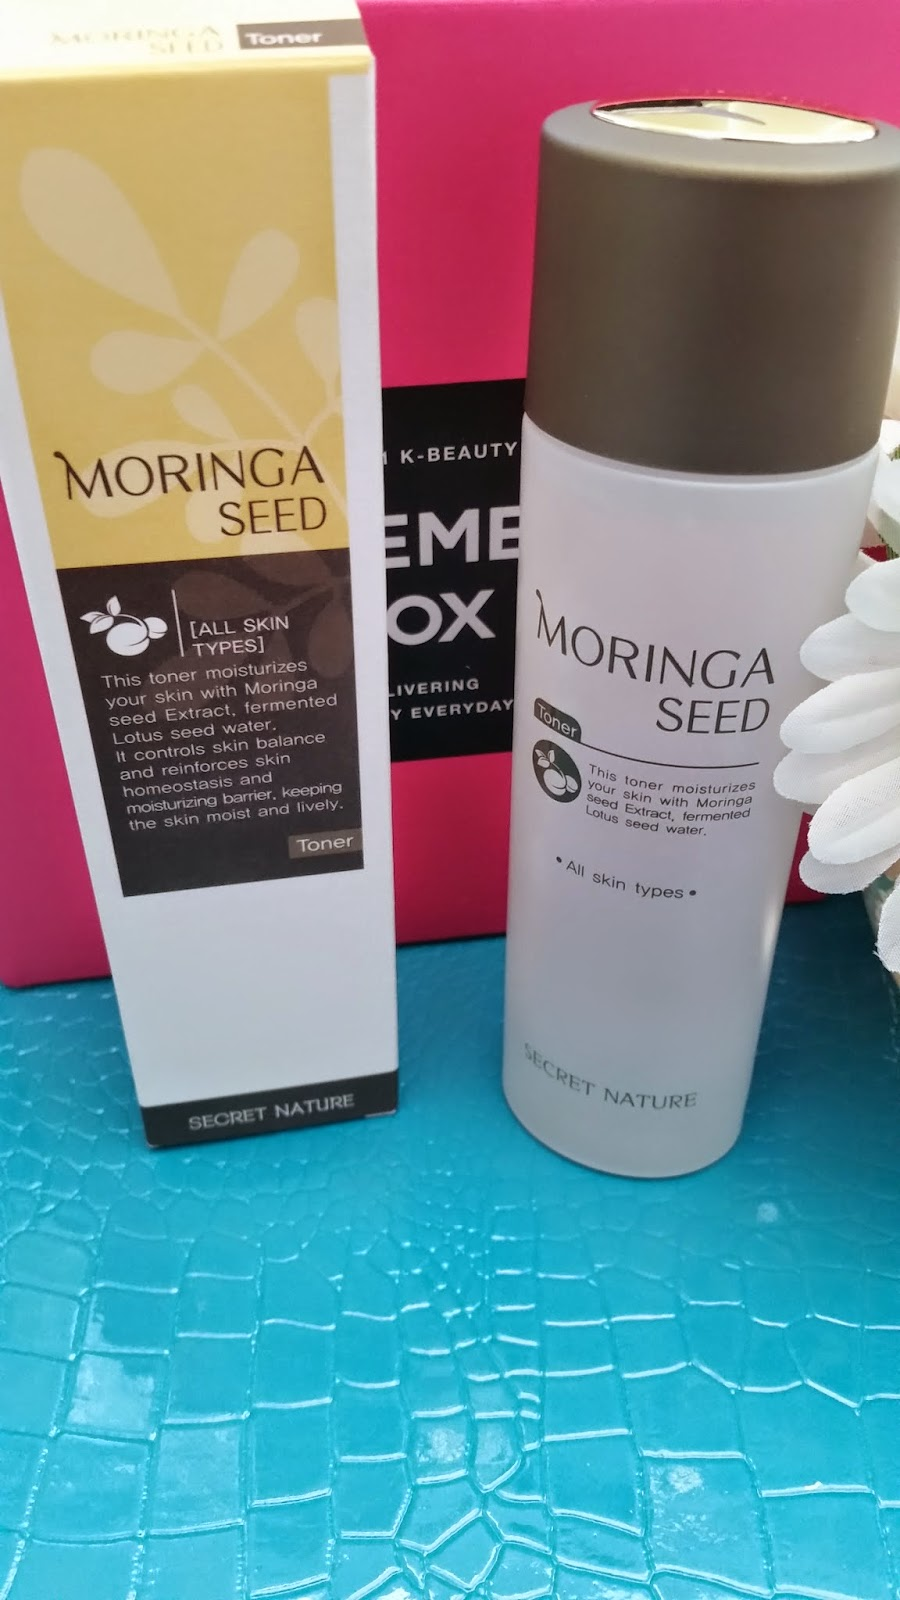 Secret Nature Moringa Seed Toner